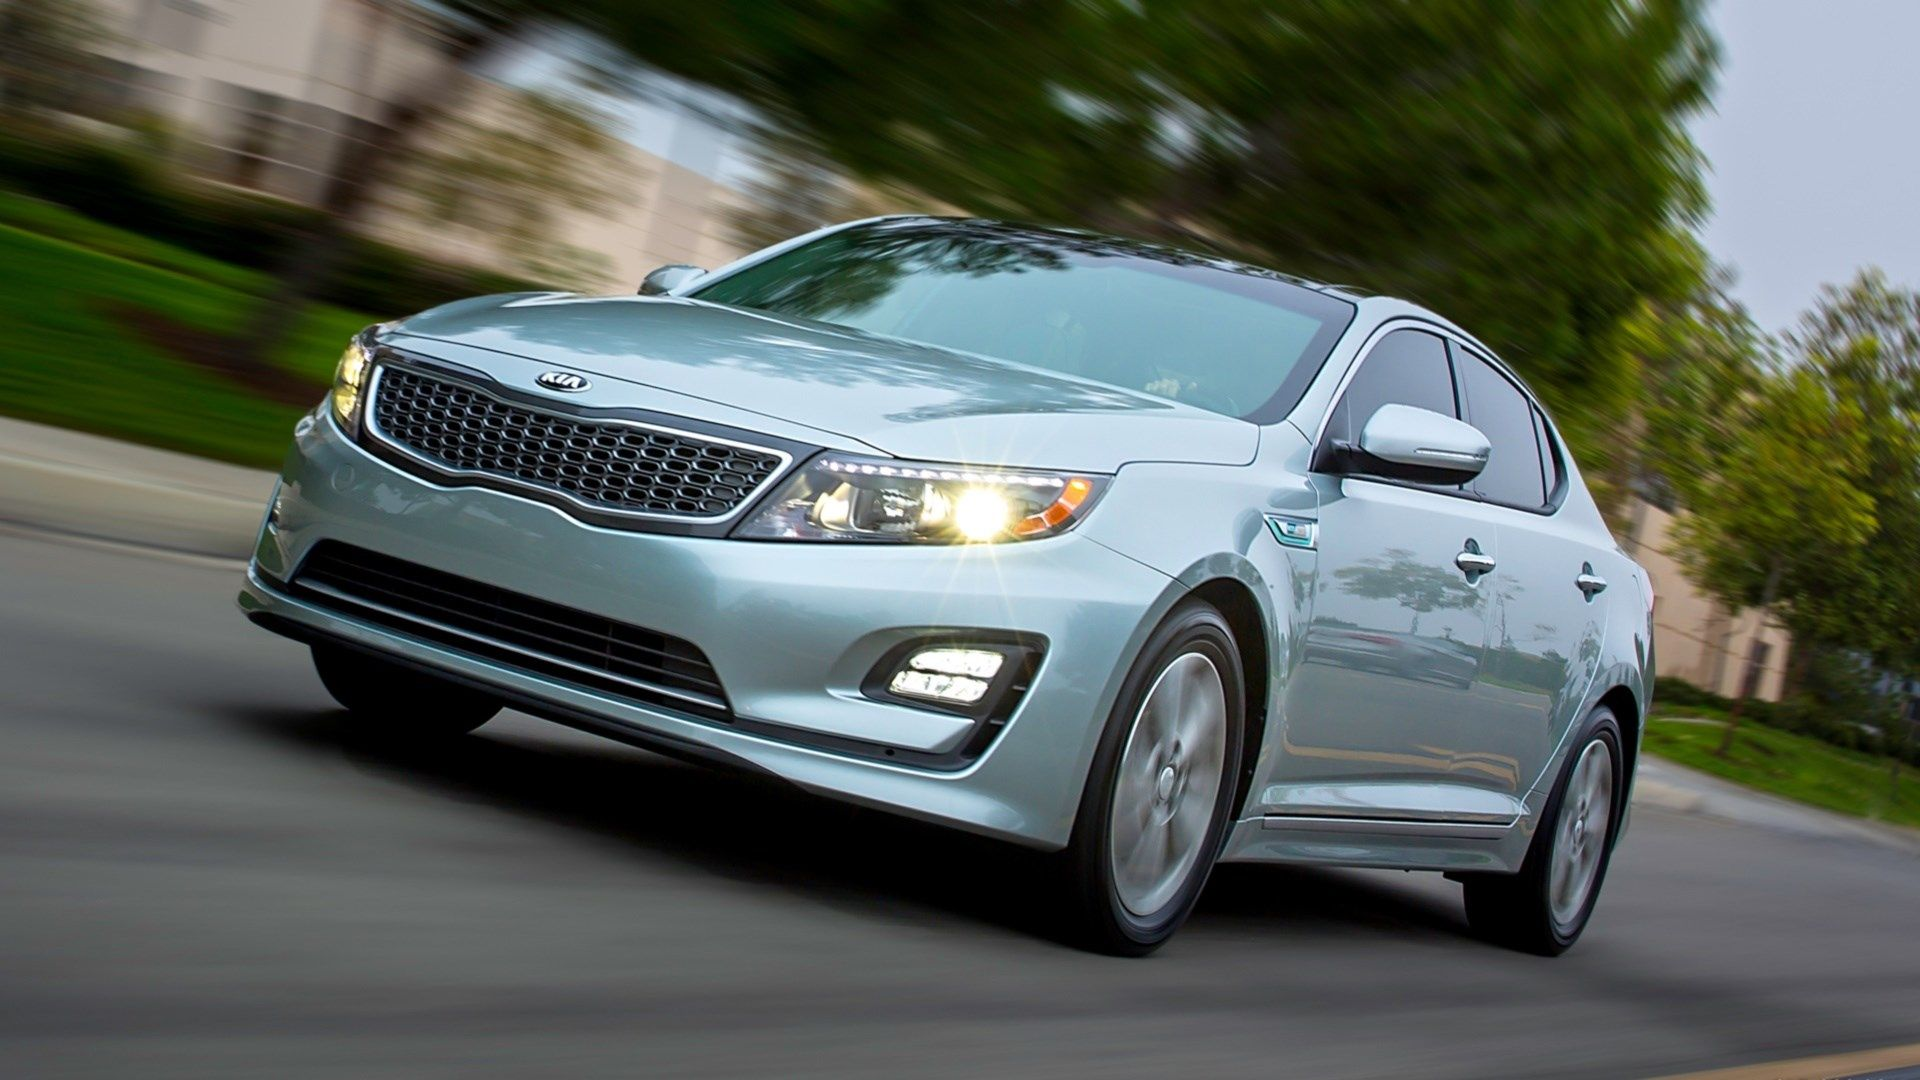 1920x1080 px kia optima pic: High Definition Backgrounds by Jenner Jacobson